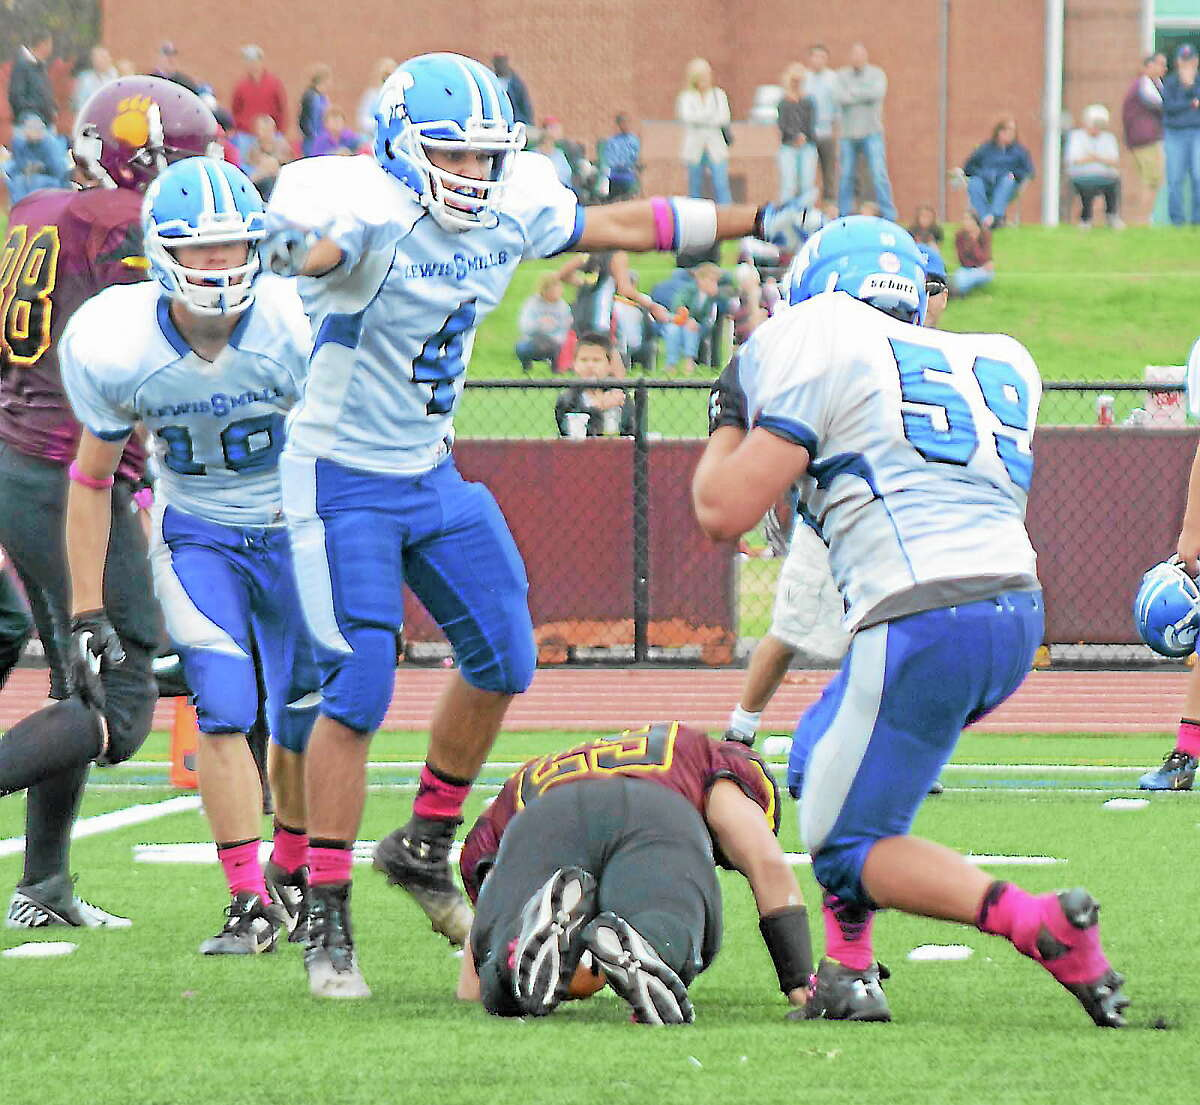 Lewis Mills' Aris Artemiadis (4) and Cameron McHale (59) celebrate after McHale tackled Granby's Anthony LaTorre (29) for a loss.